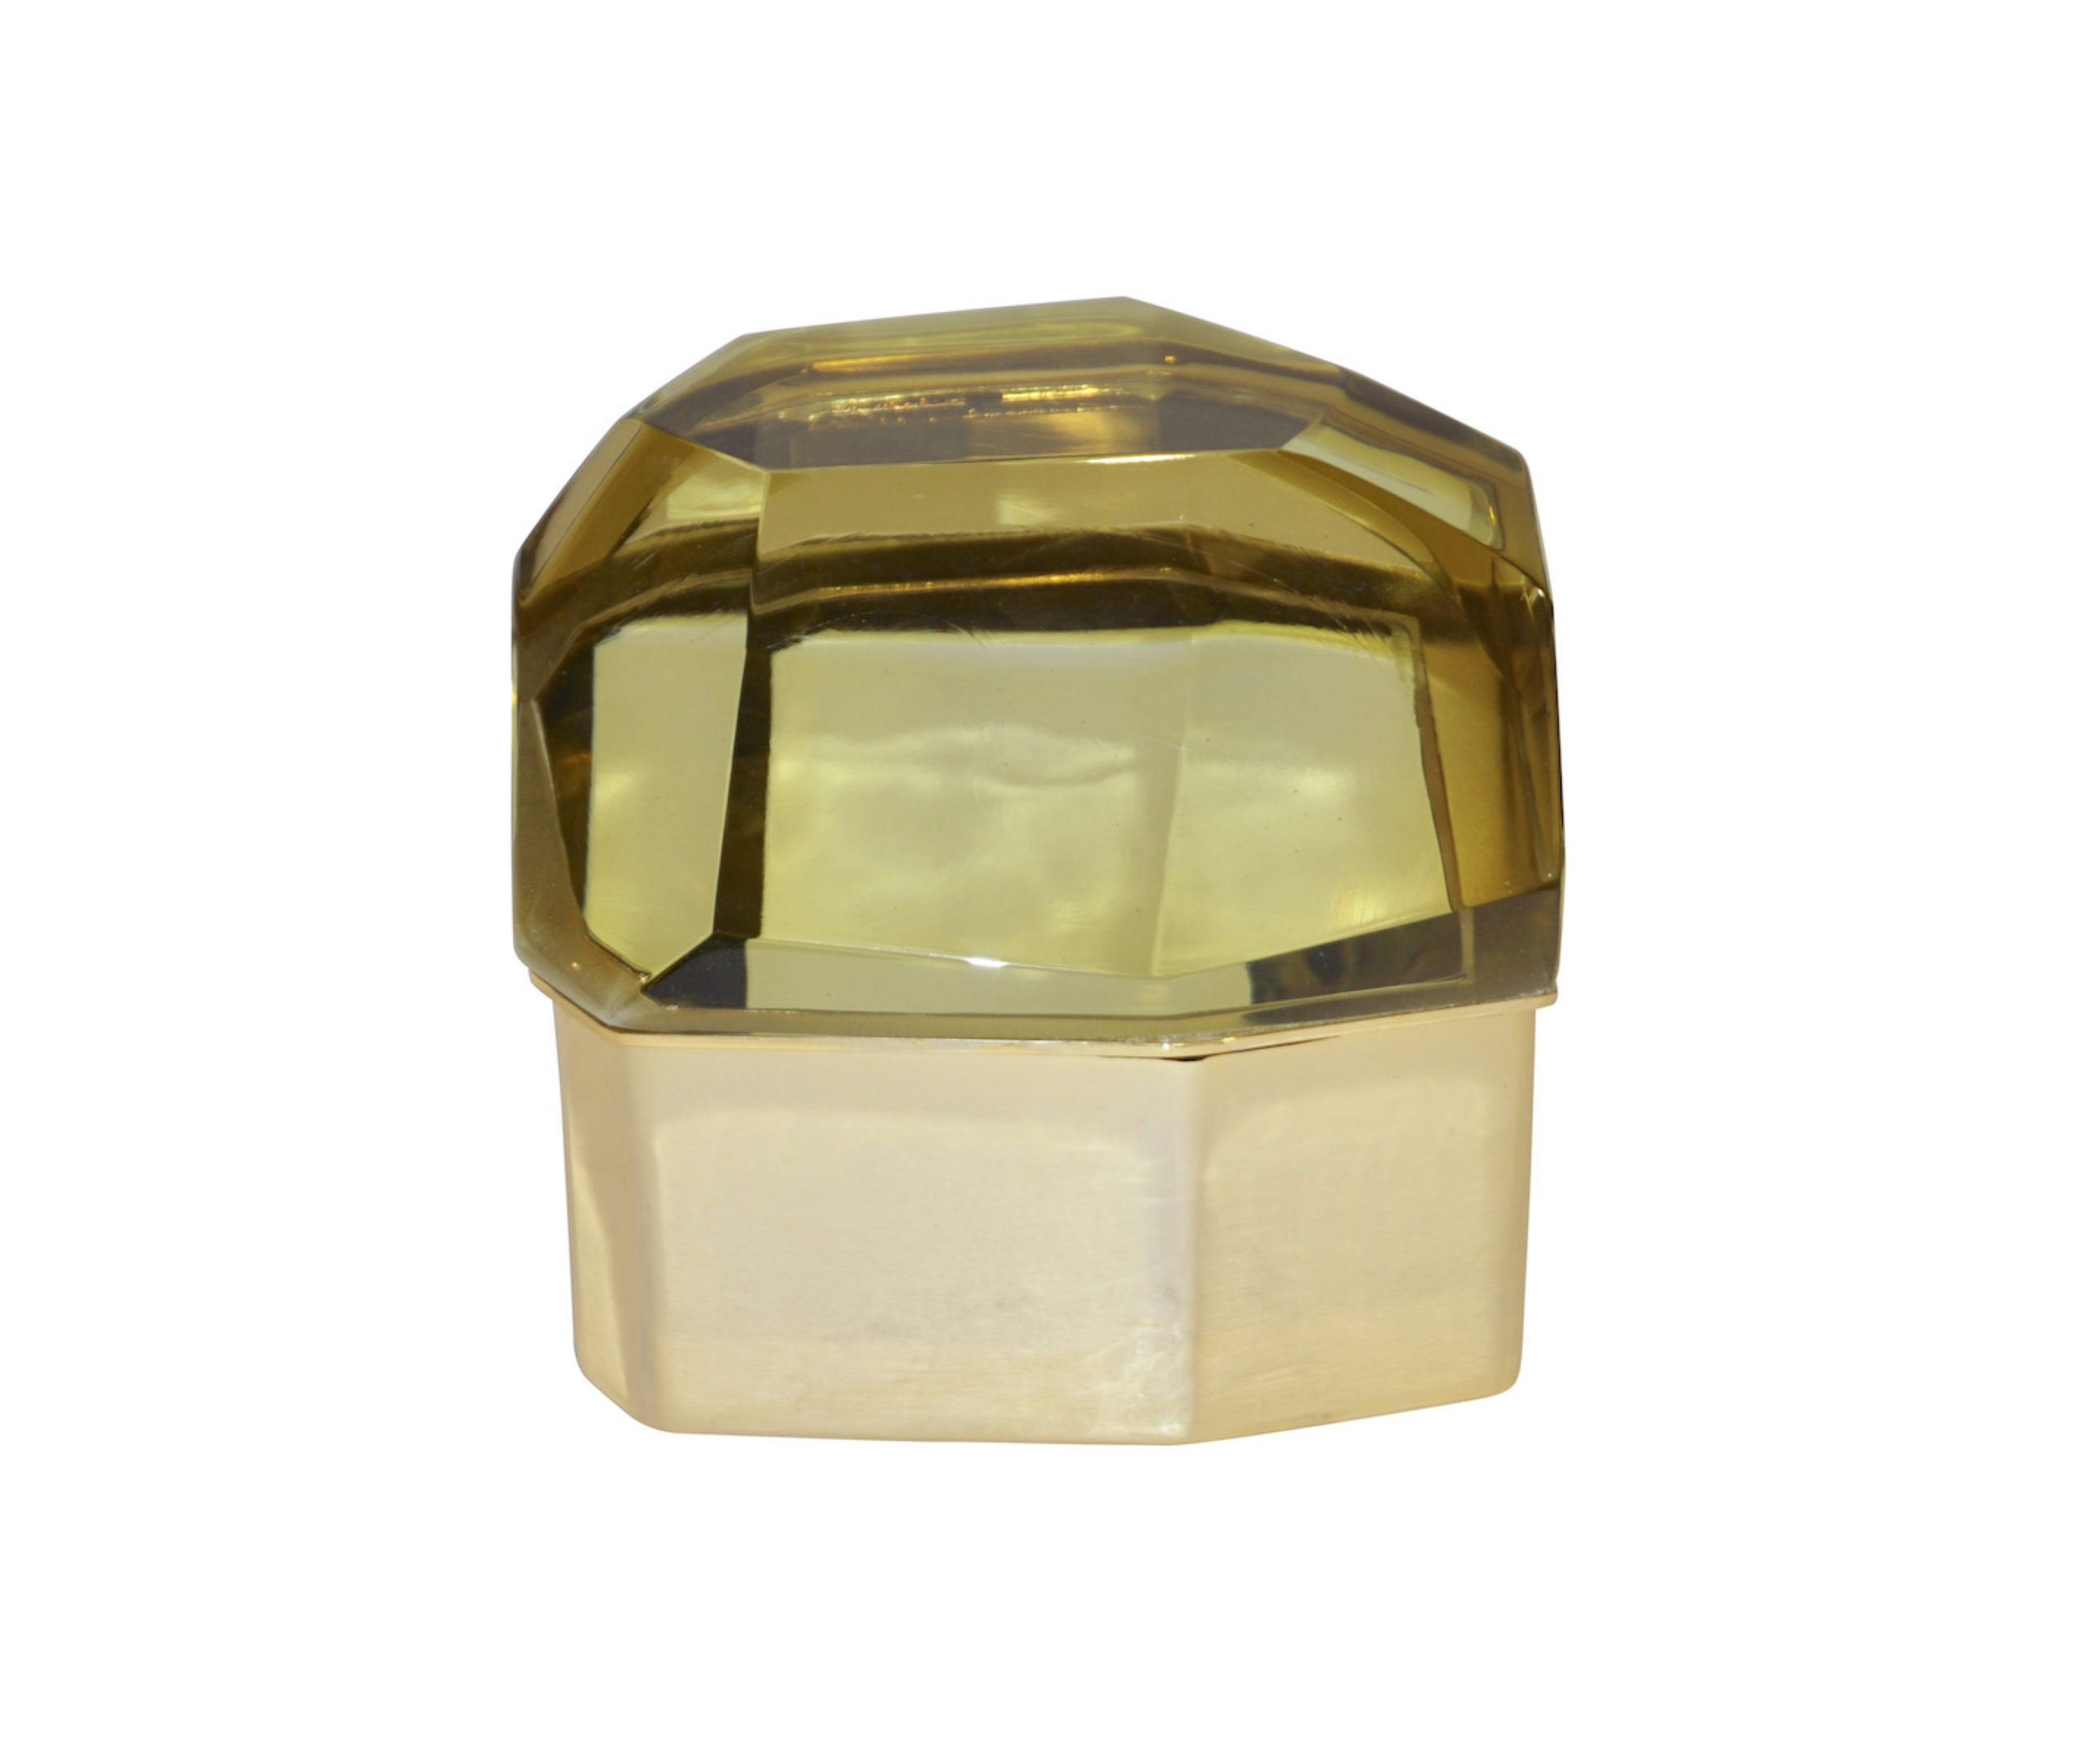 cosulich_interiors_and_antiques_products_new_york_design_toso_italian_modern_diamond_shaped_gold_murano_glass_brass_jewel_like_box-scaled-1